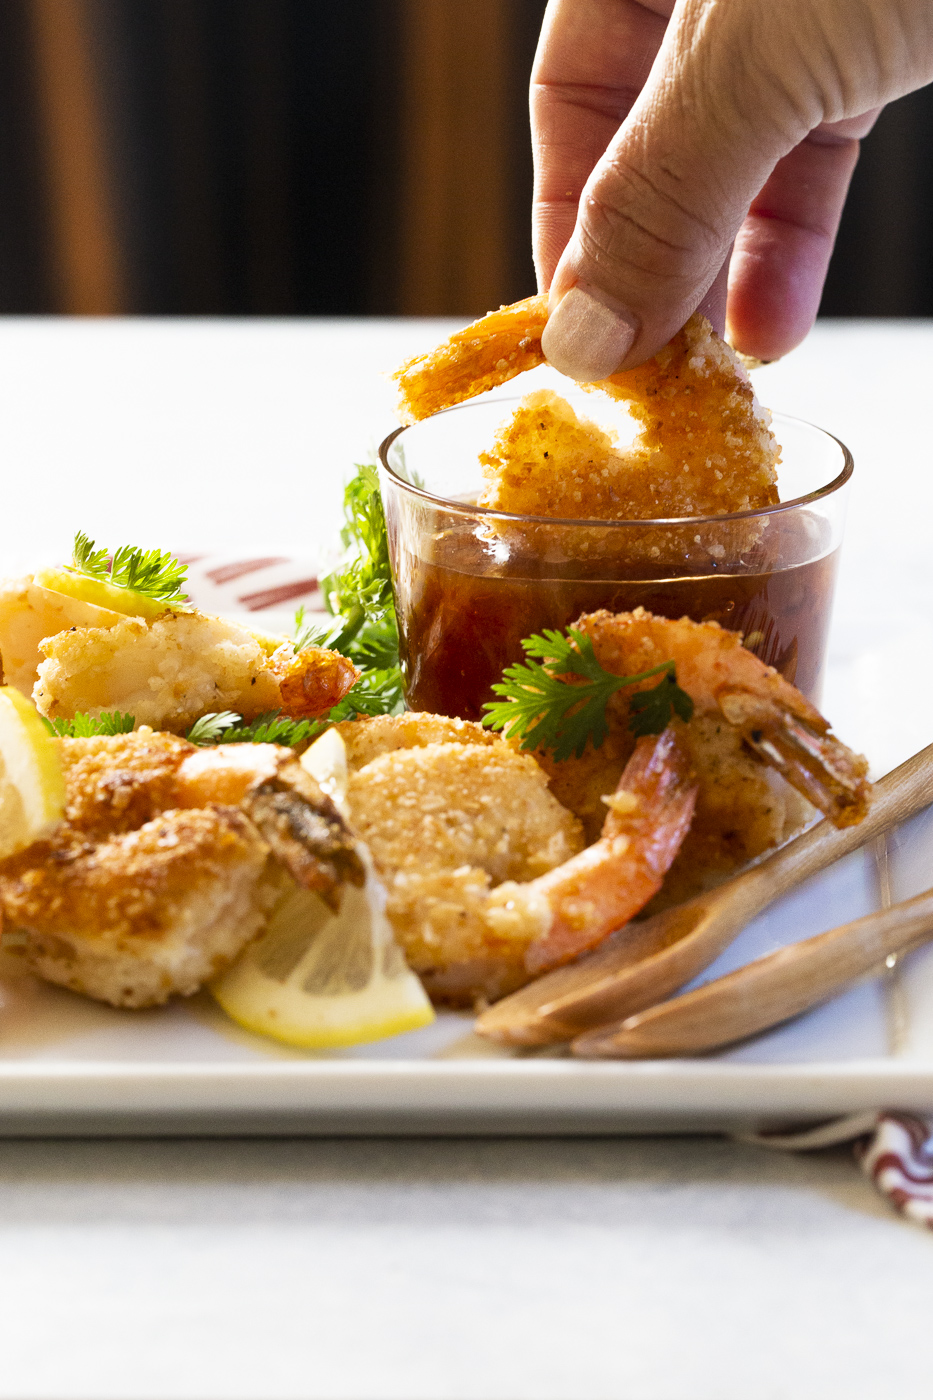 coconut shrimp being dipped in a spicy apricot sauce.